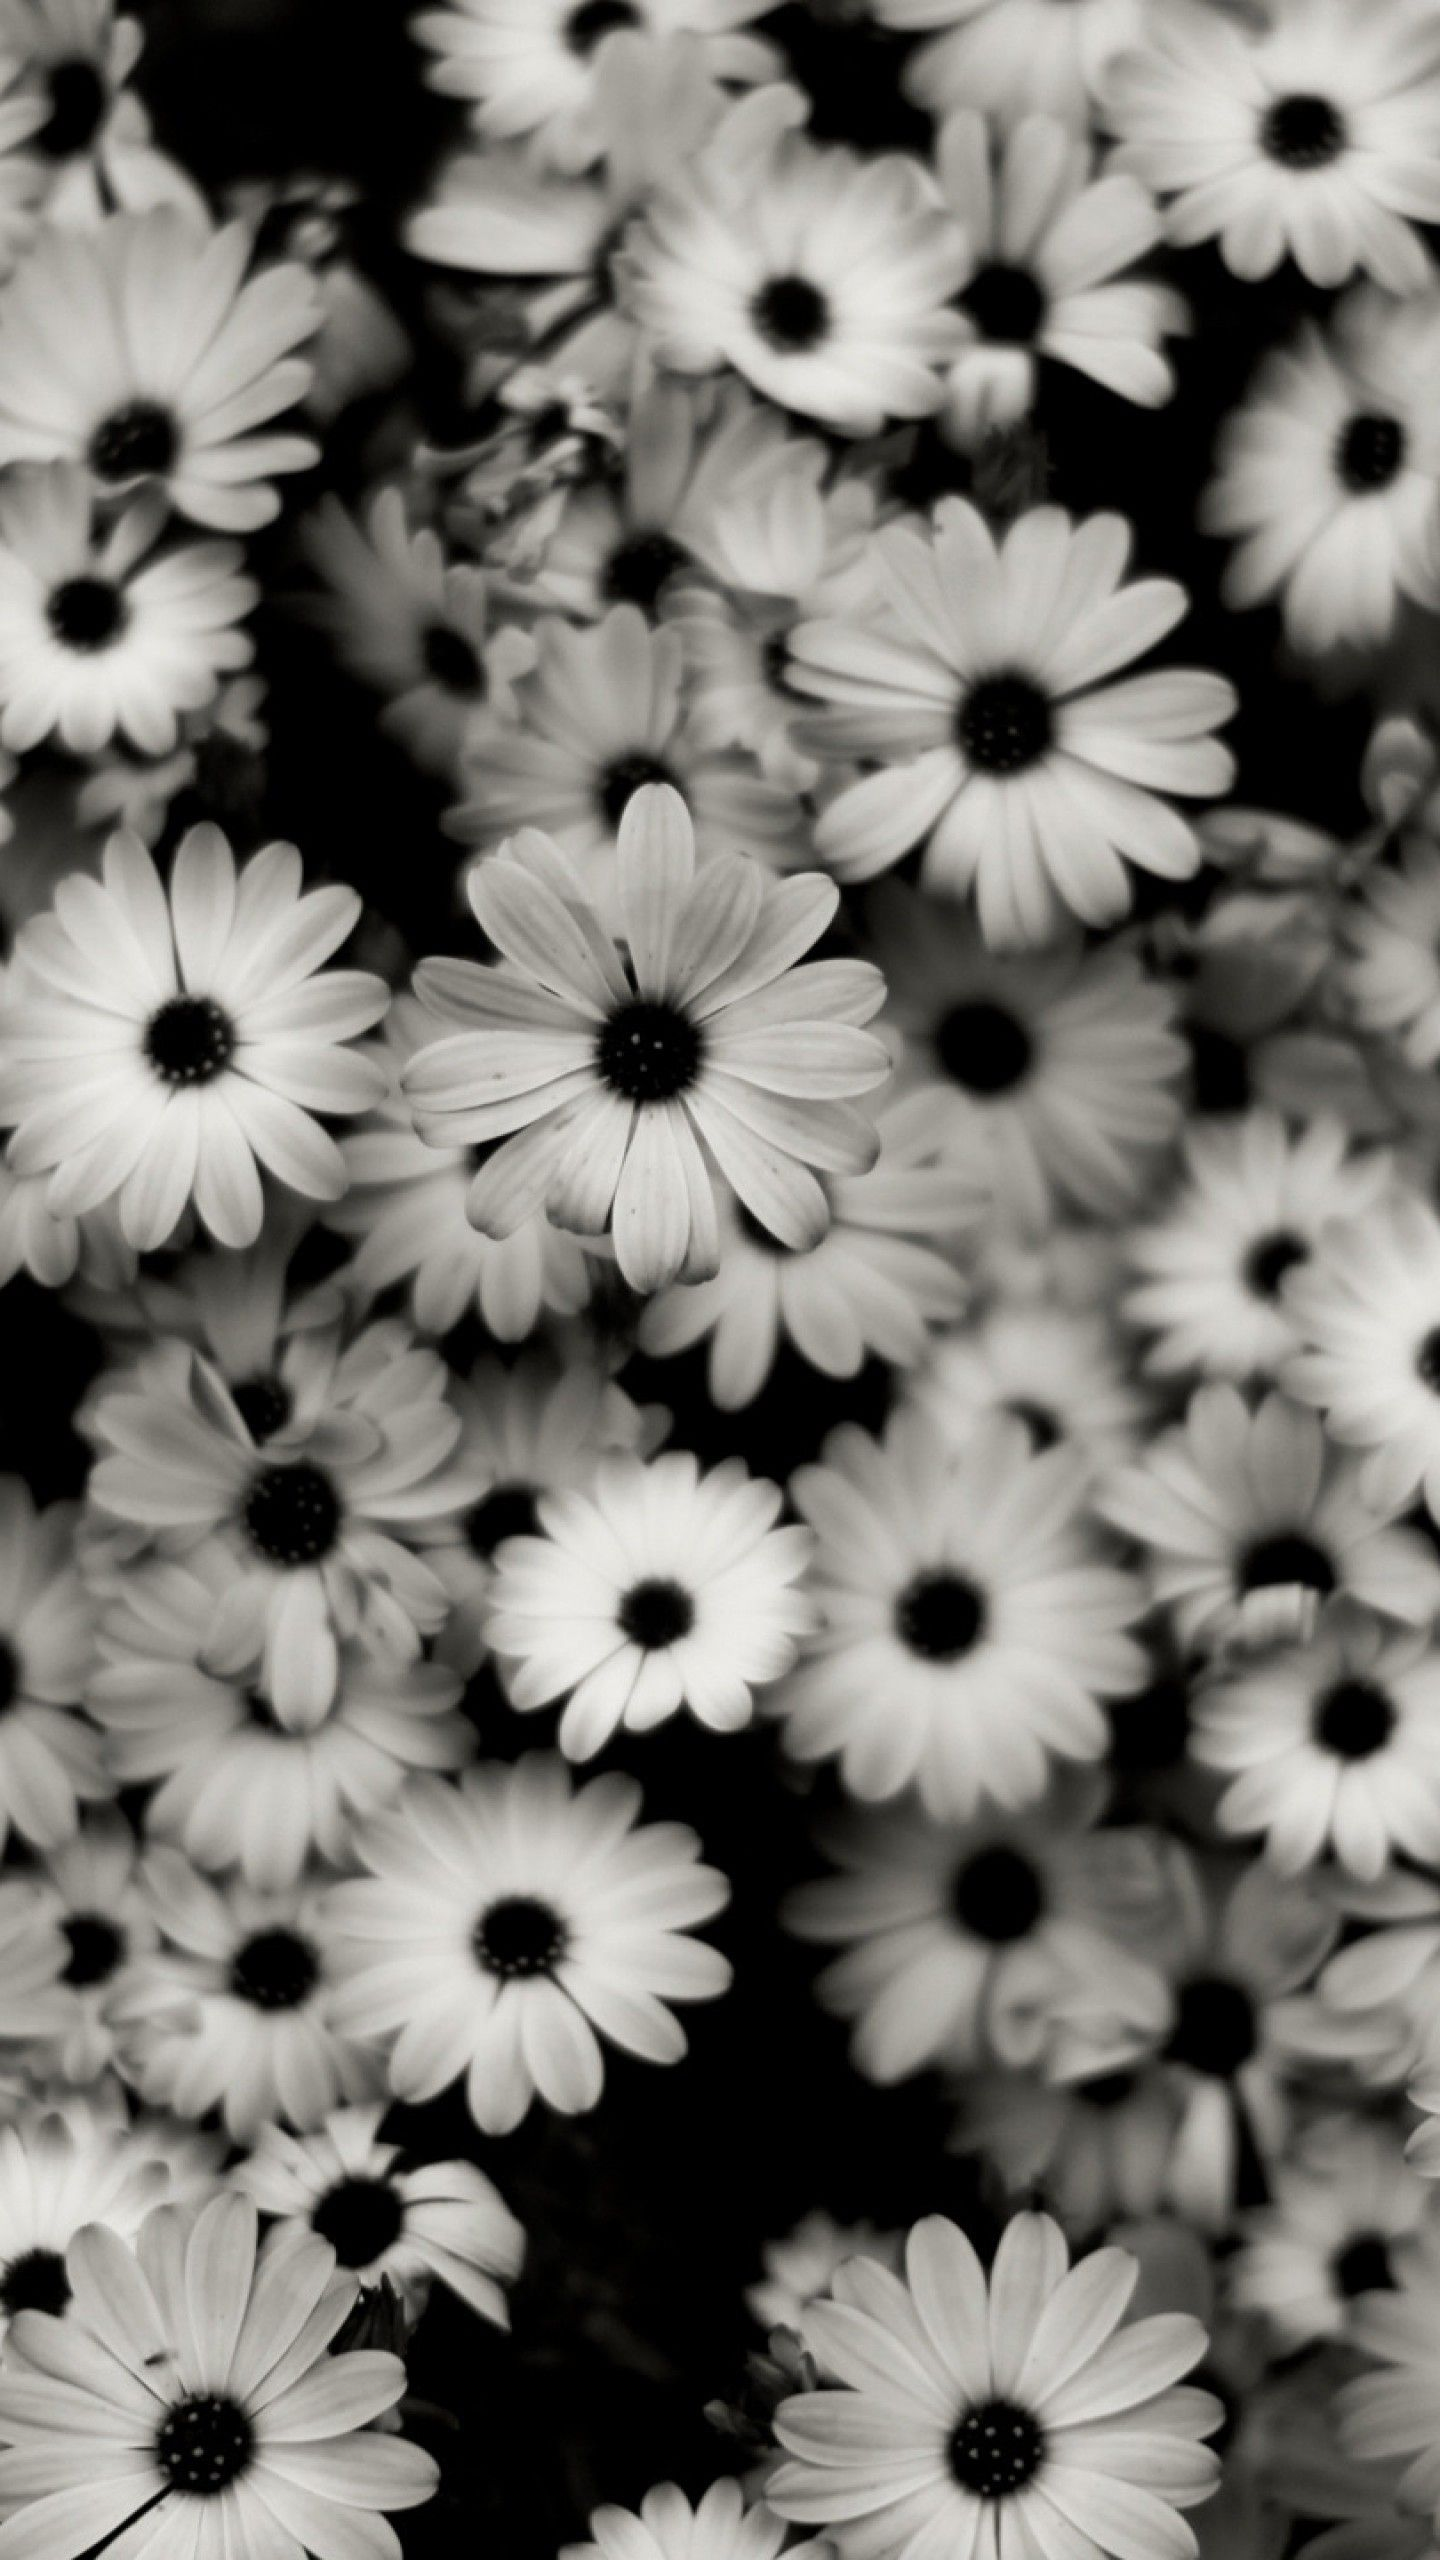 1440x2560 Preview Wallpaper Black White Flowers Grey Daisies 1440x2560 Black And White Wallpaper Iphone White Wallpaper For Iphone White Roses Wallpaper